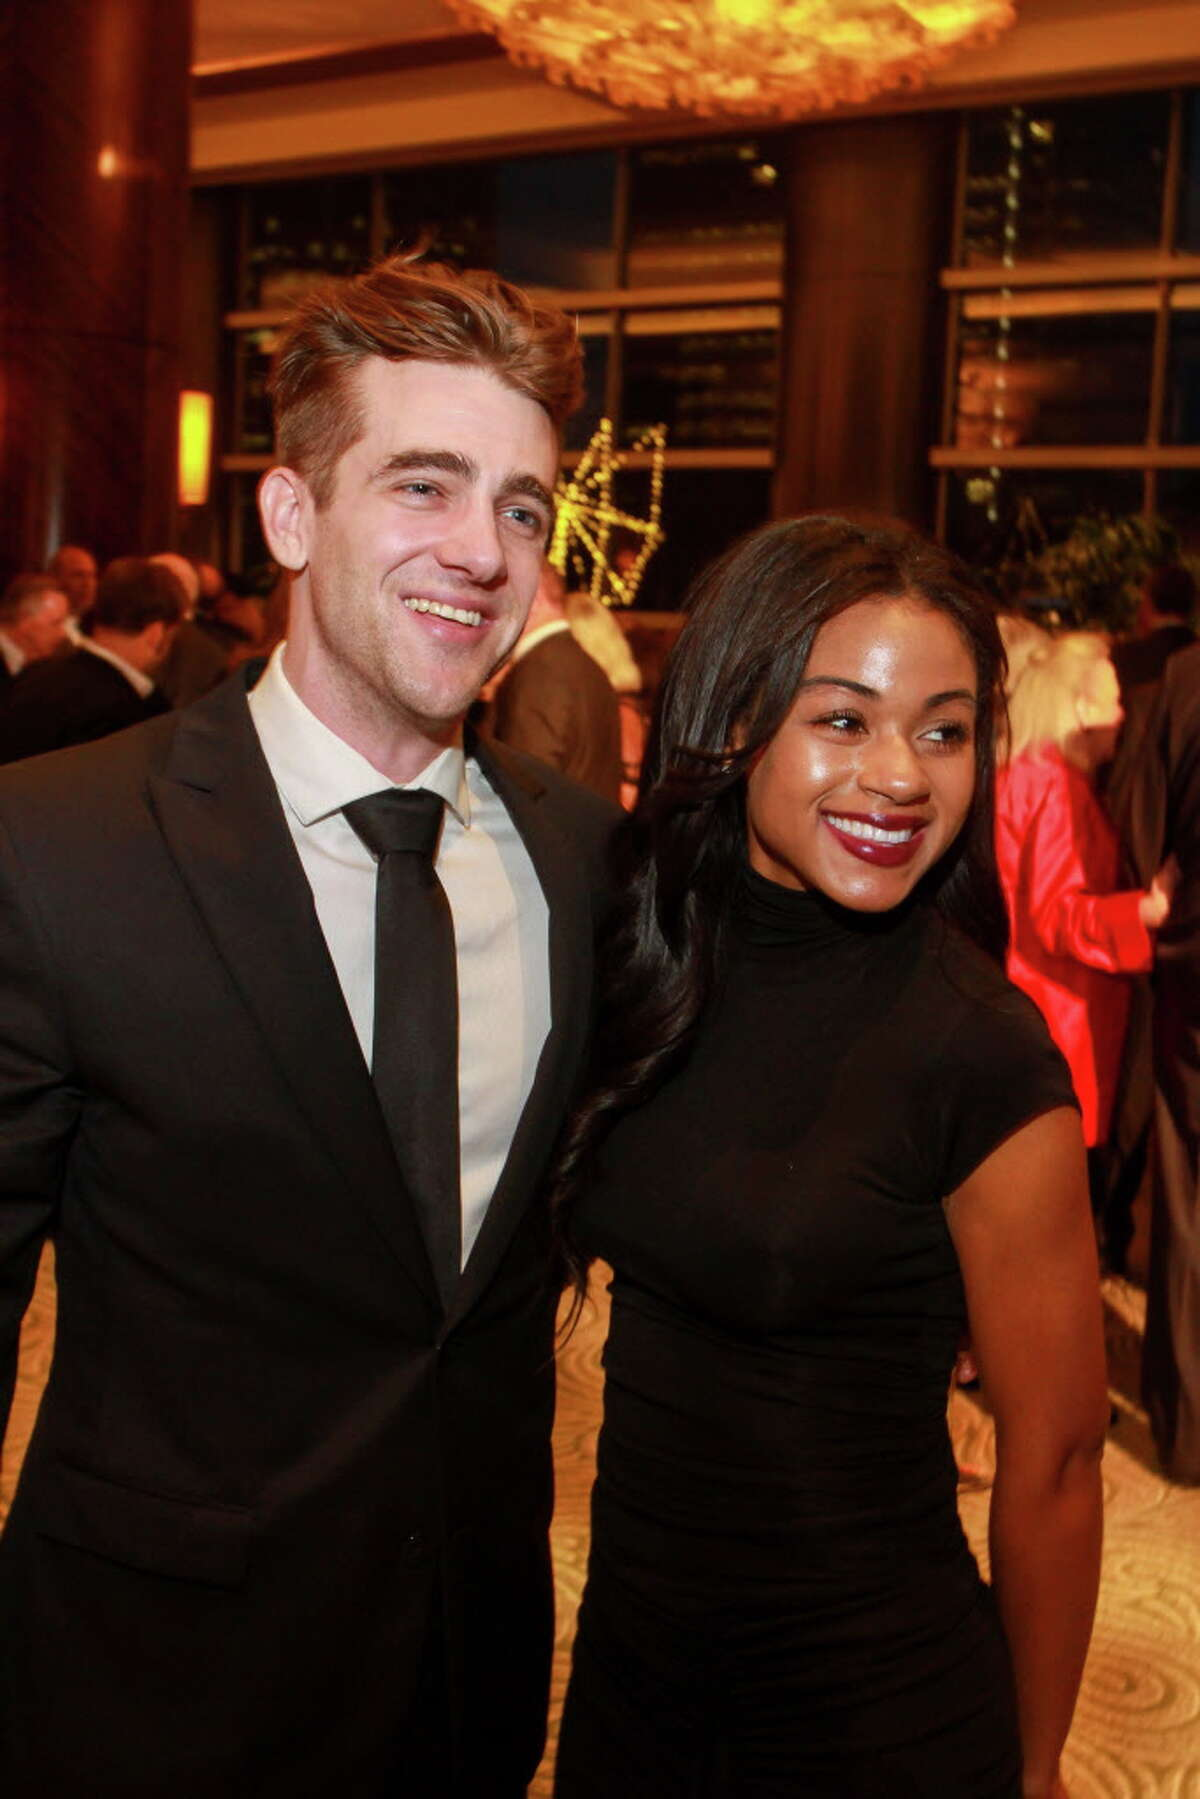 Jared Jinkerson and Aneisha Hughes at the Constellation gala. (For the Chronicle/Gary Fountain, November 4, 2016)